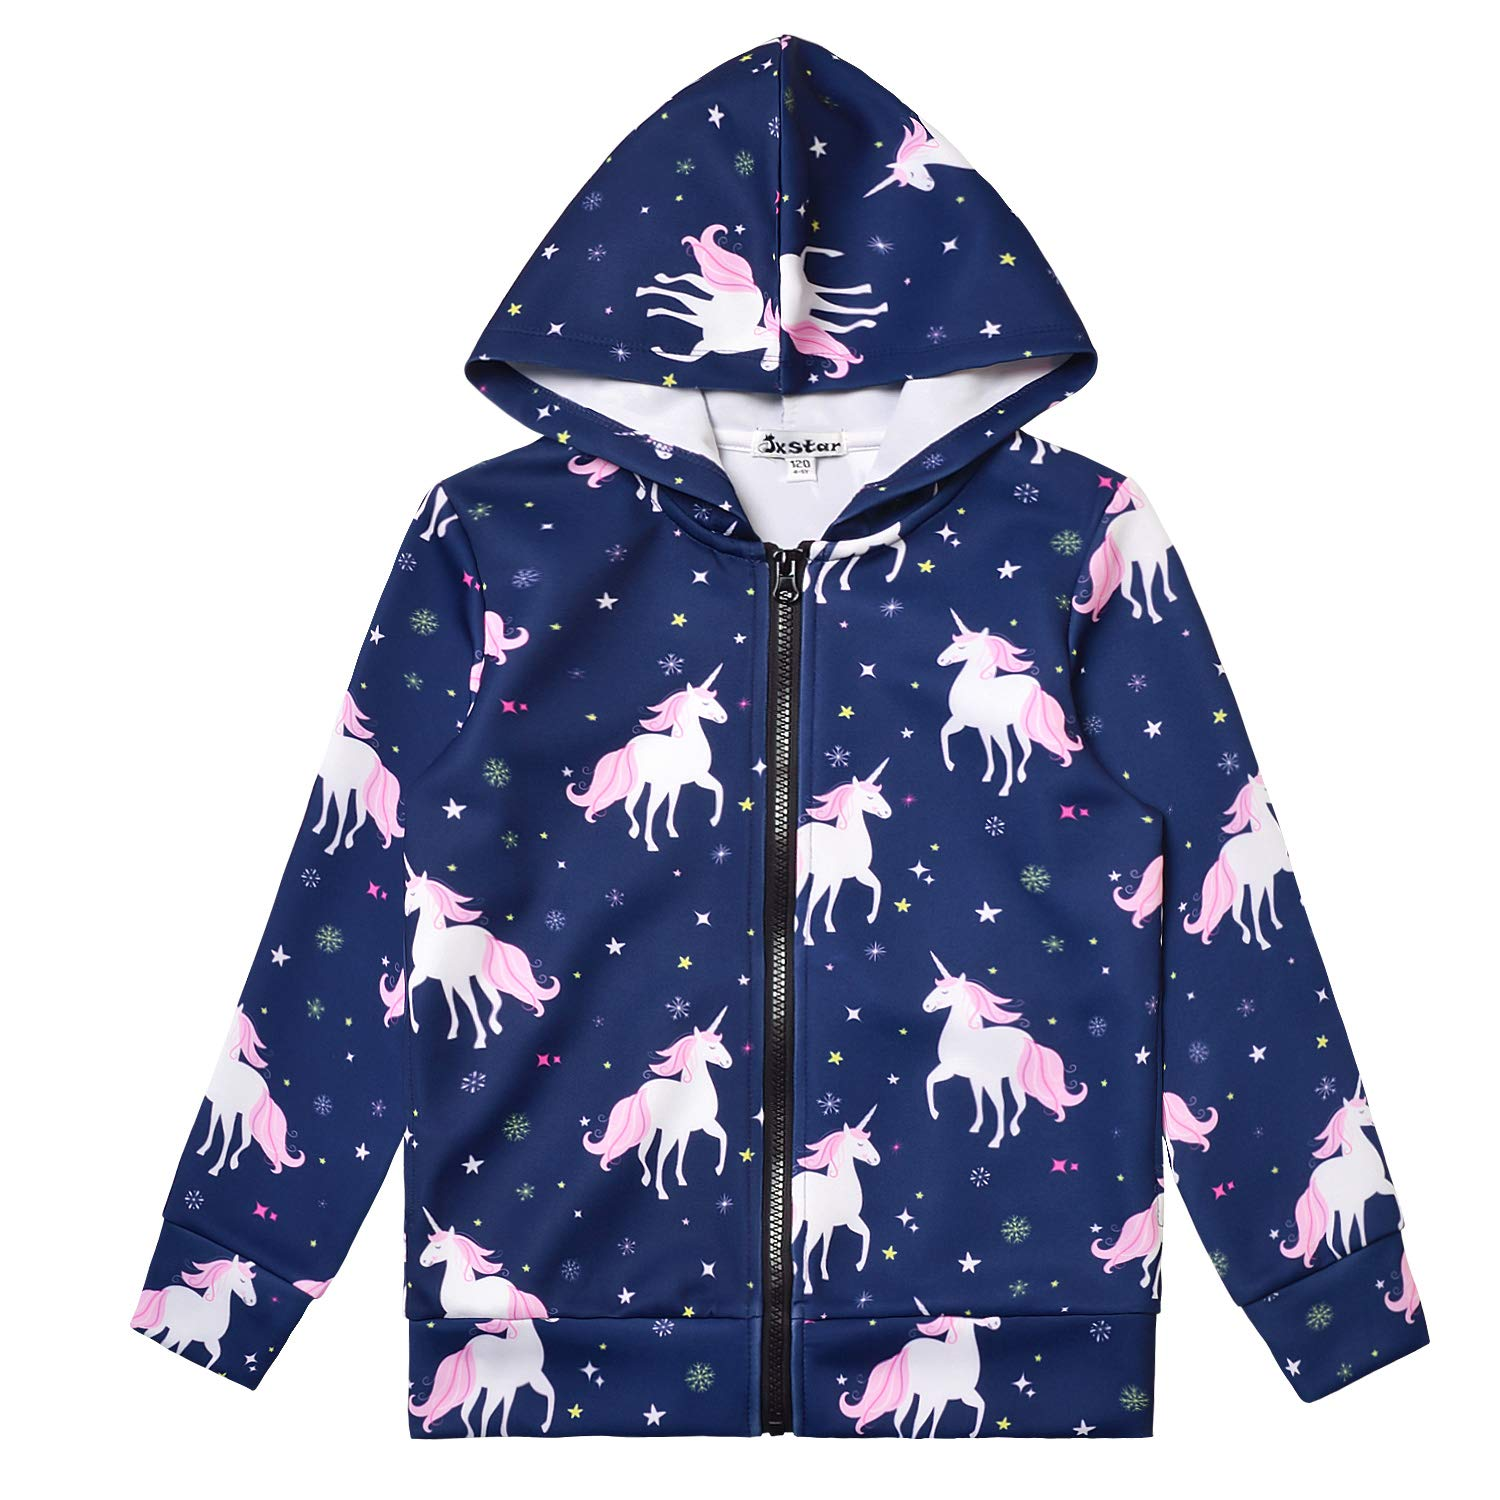 Girls Zip Up Hoodie Jacket Unicorn Sweatshirt with Pockets JXGCTAM80811